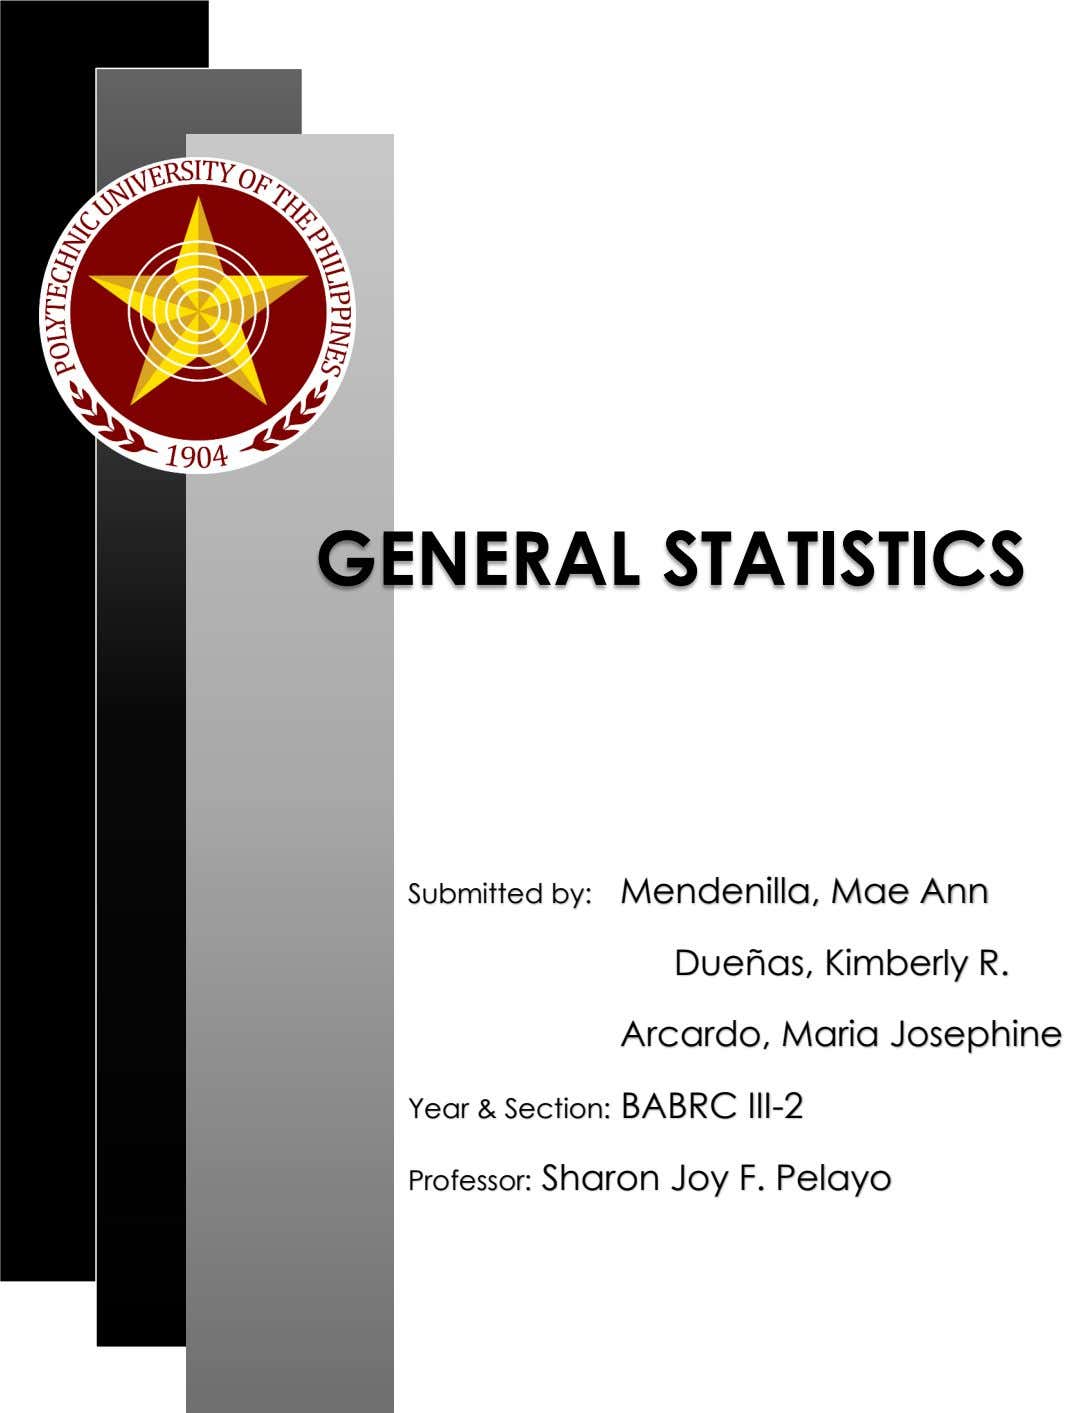 GENERAL STATISTICS Submitted by: Mendenilla, Mae Ann Dueñas, Kimberly R. Arcardo, Maria Josephine Year &